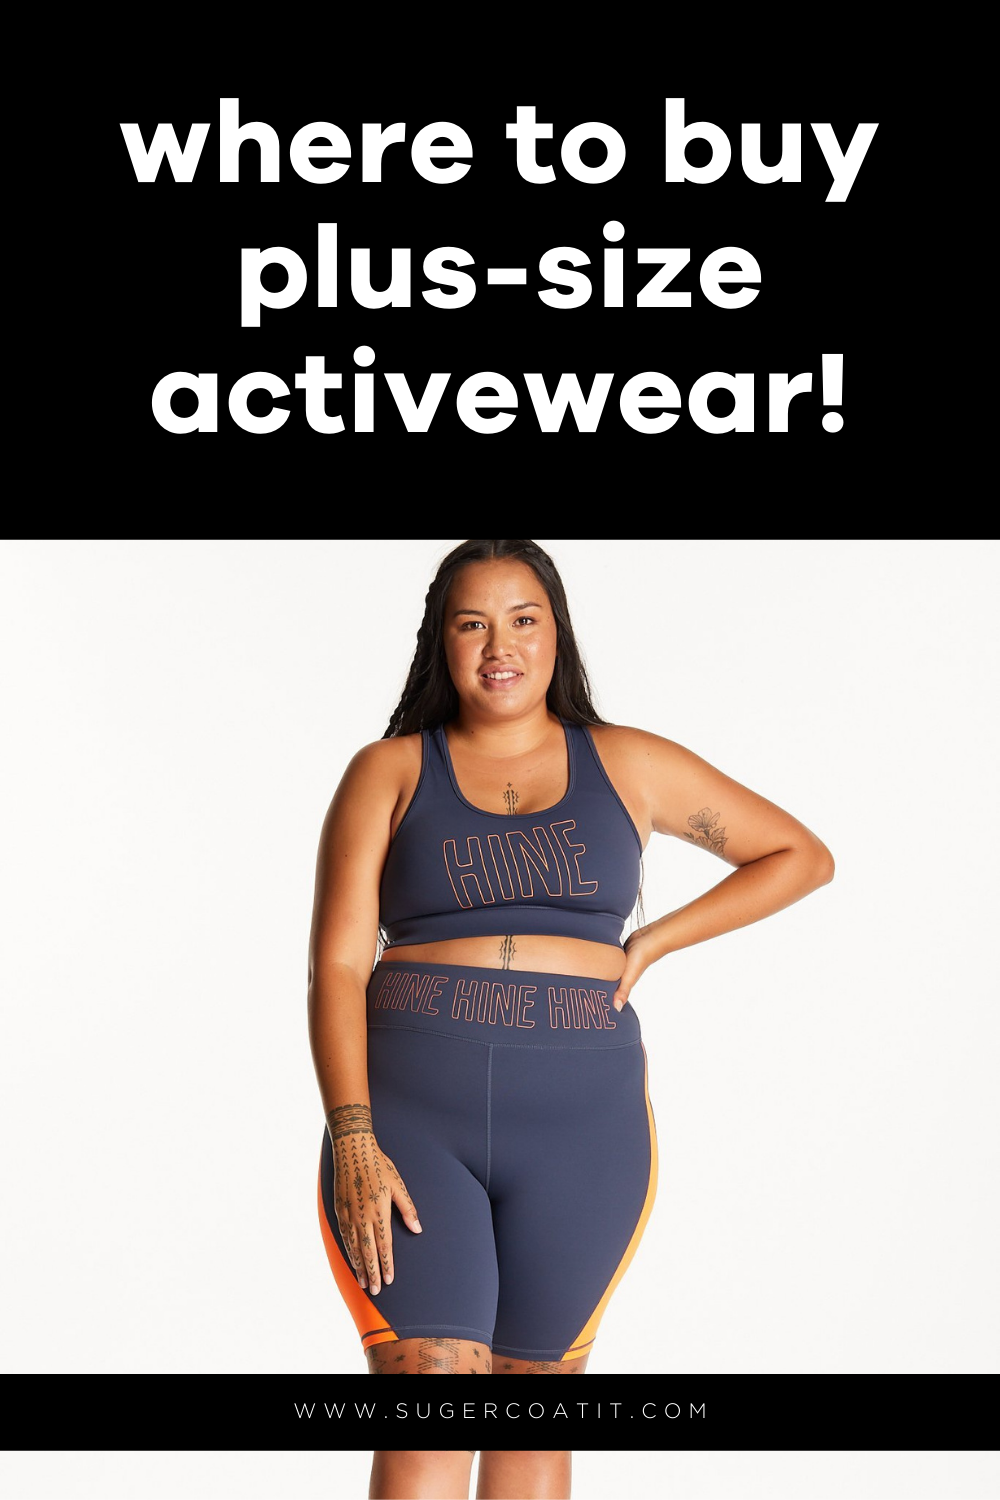 Where to Buy Plus Size Activewear - 2021 Update - Suger Coat It